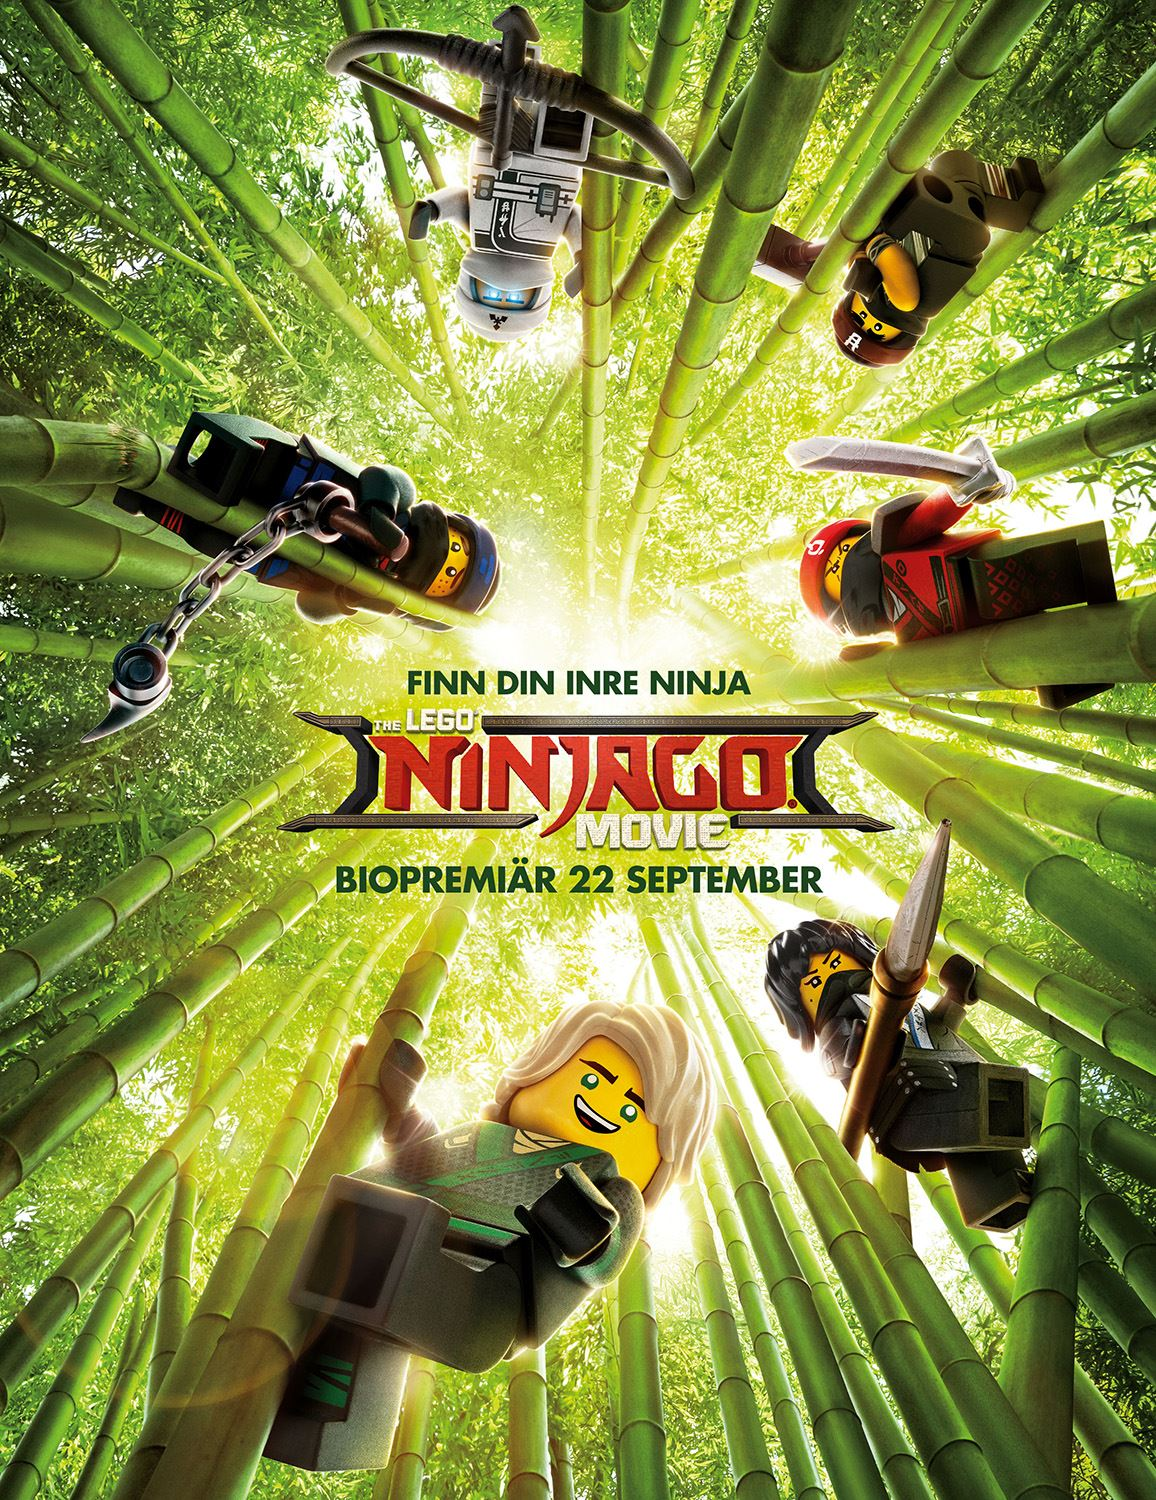 Kultur- och höstlovsbio: The Lego: Ninjago Movie